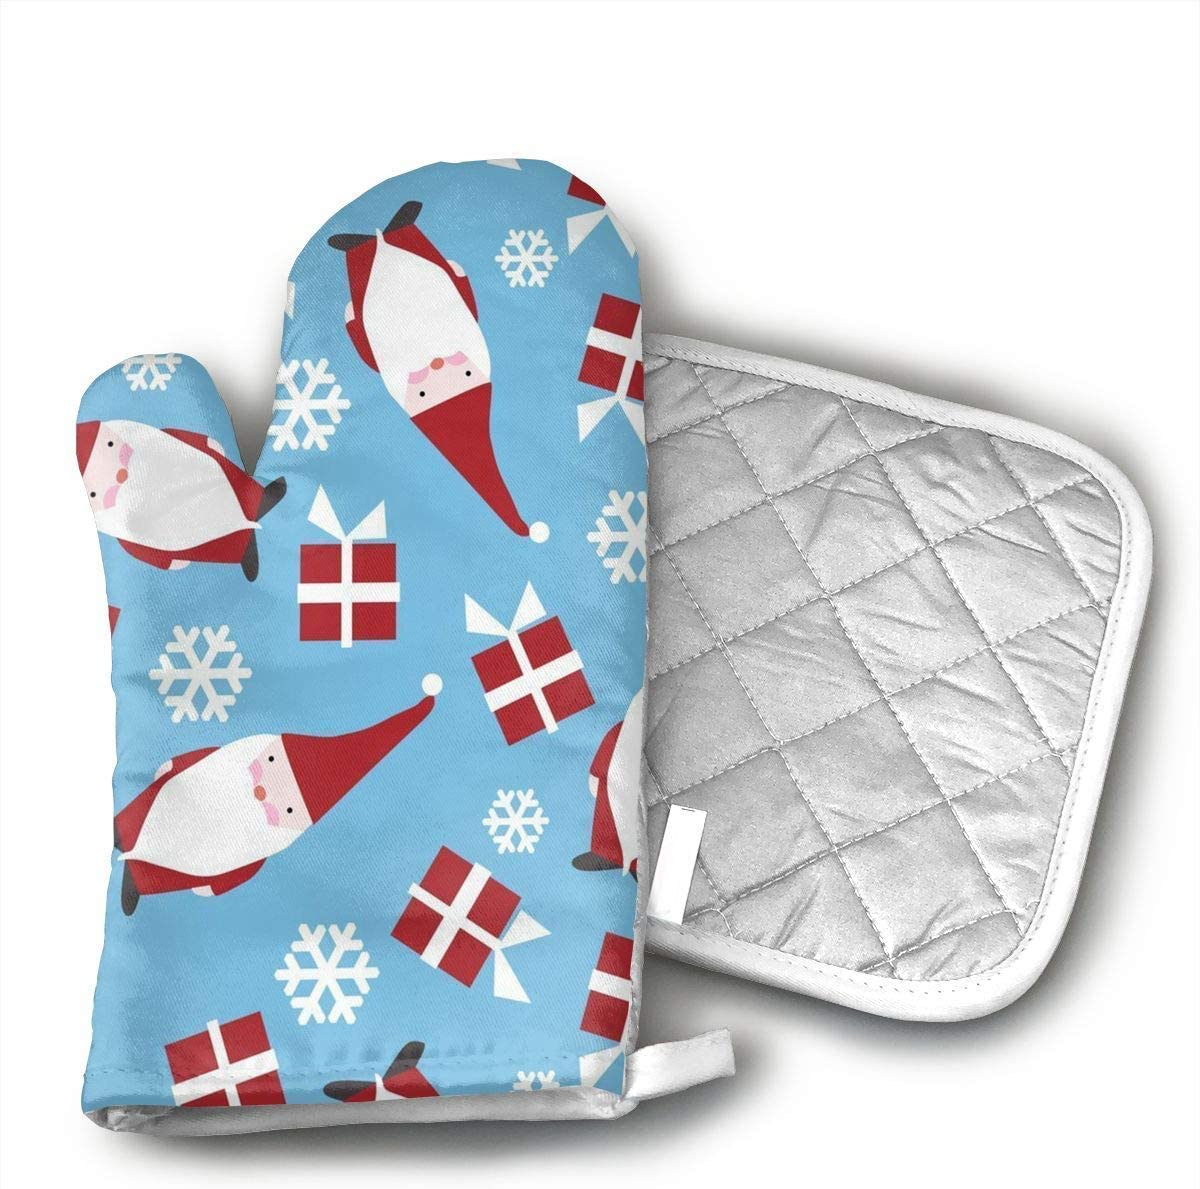 Christmas Holiday Danish Oven Mitts and Pot Holders Set with Polyester Cotton Non-Slip Grip, Heat Resistant, Oven Gloves for BBQ Cooking Baking, Grilling